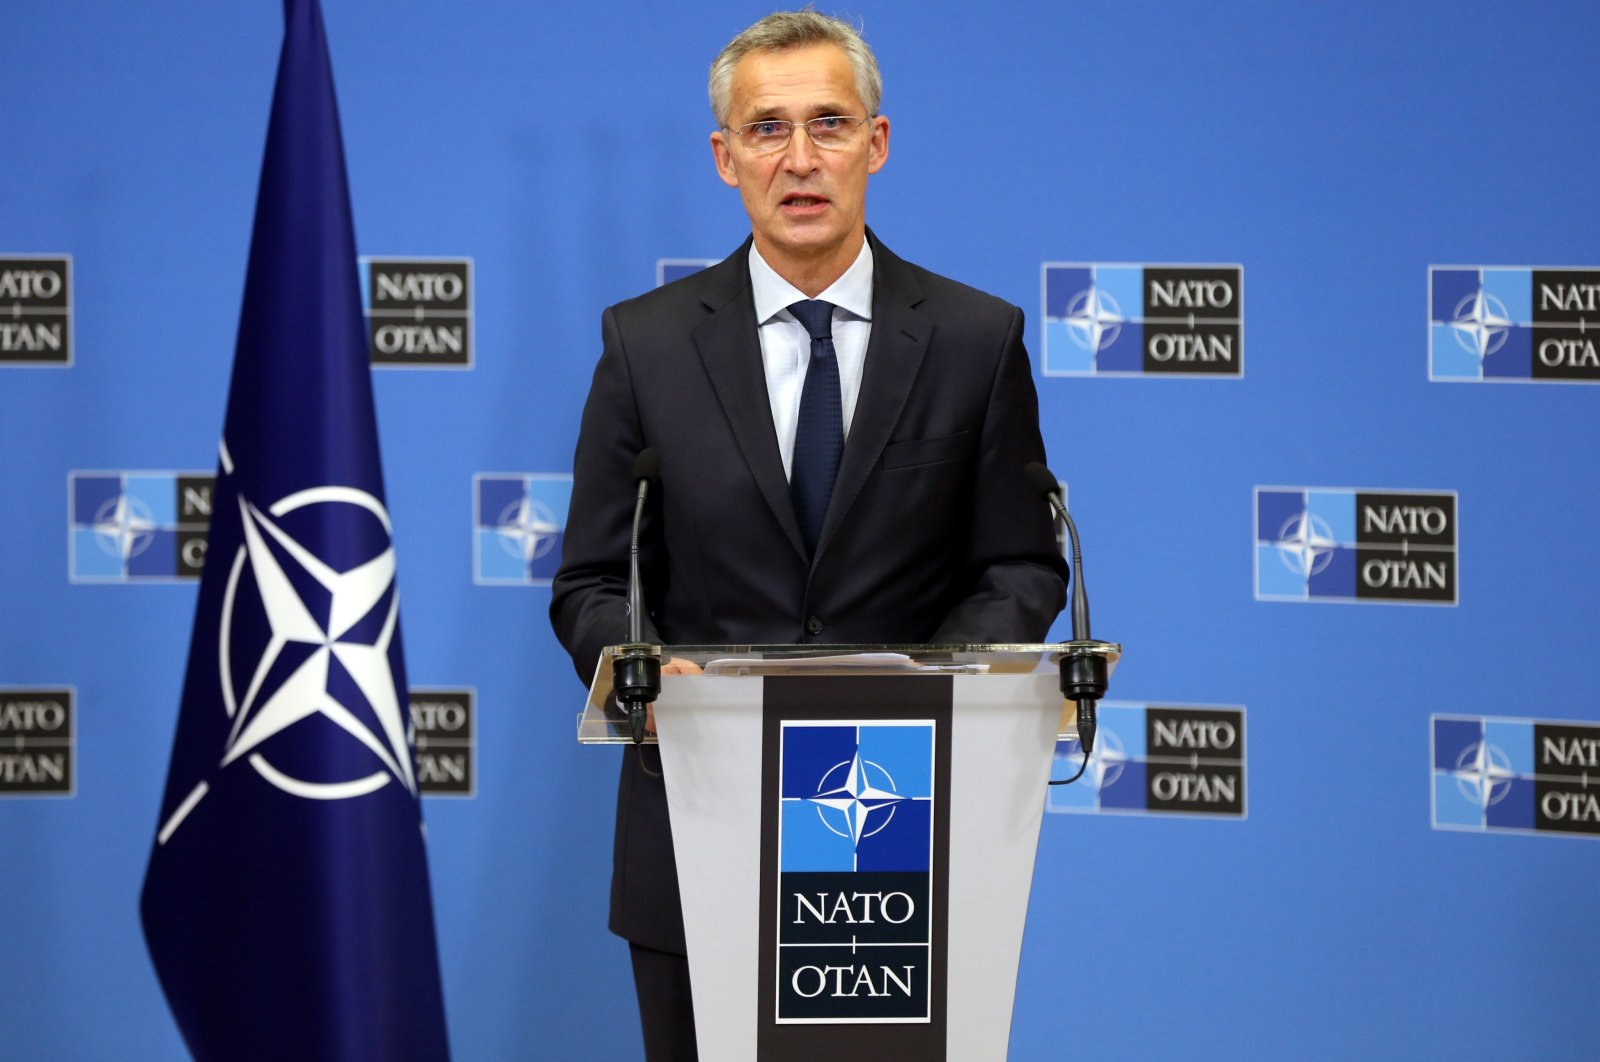 NATO Secretary-General Jens Stoltenberg speaks during a press conference in Brussels, Aug. 10, 2020. (AA Photo)